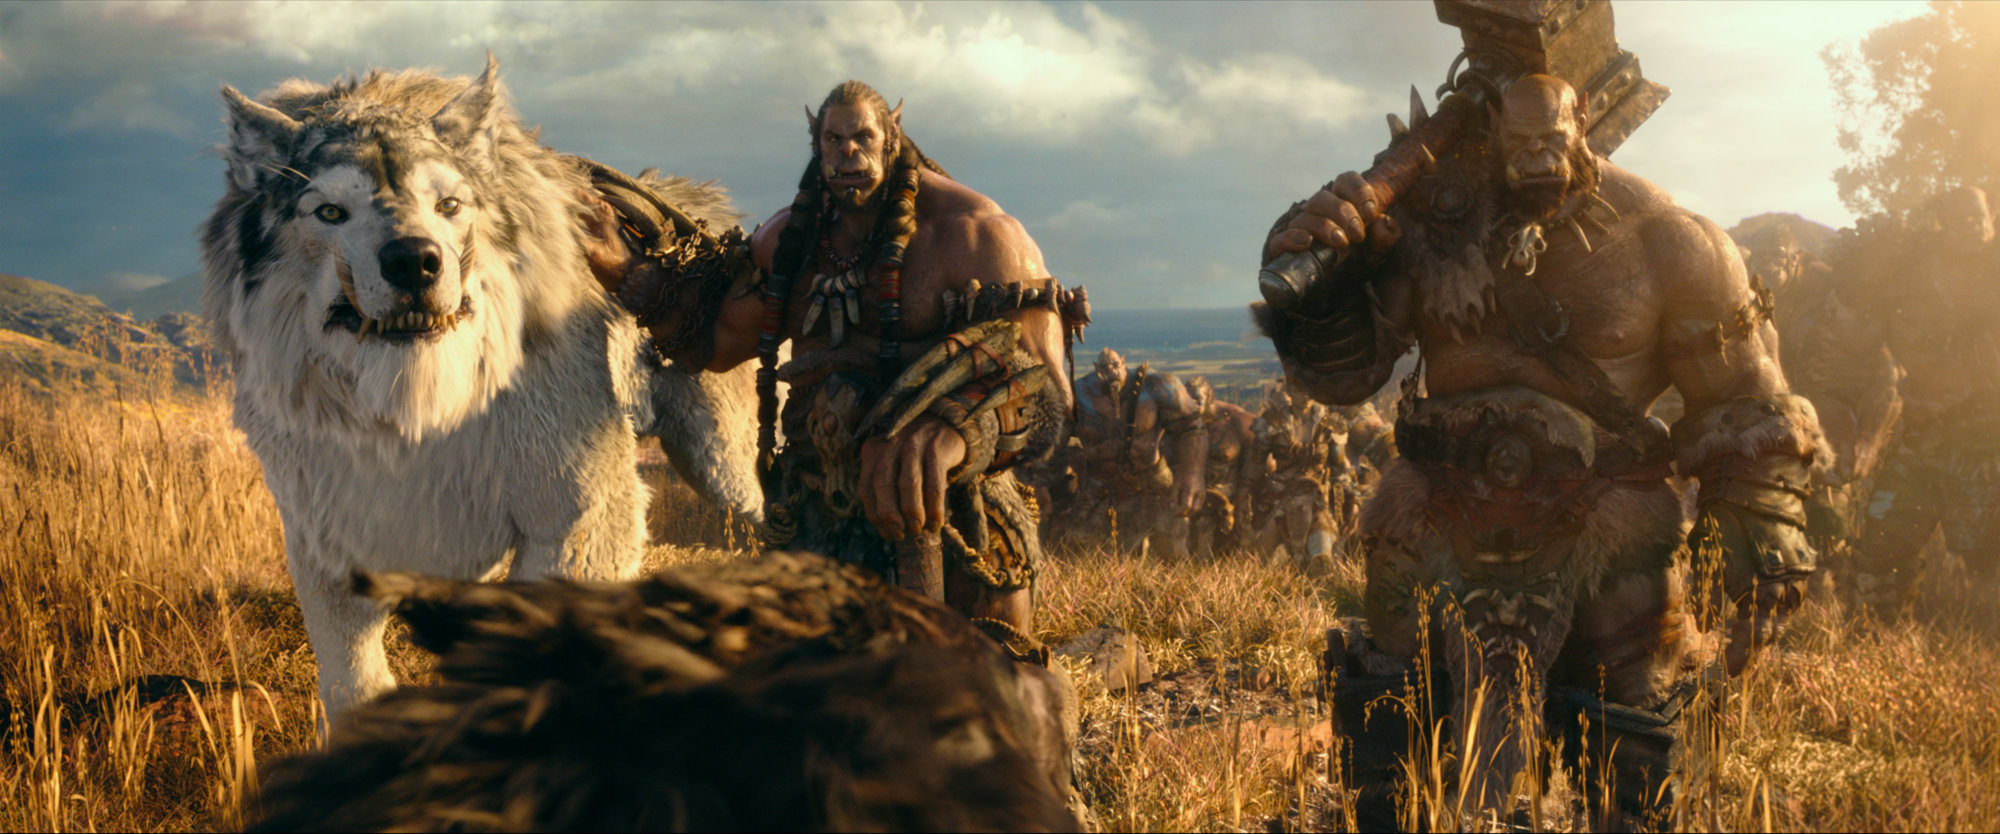 warcraft-review-ing06-20160611